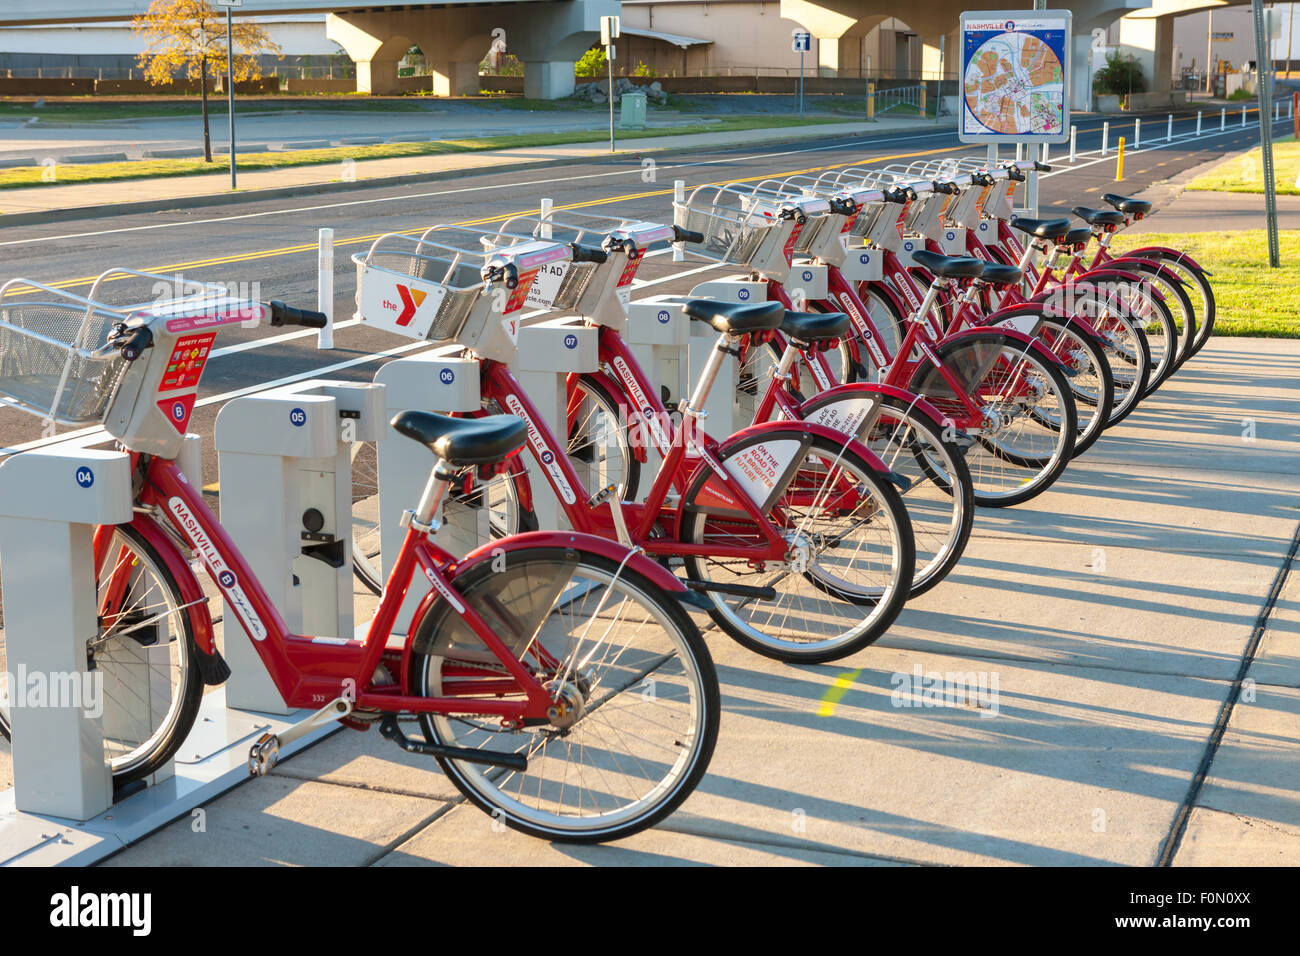 Self Service Bikes Stock Photos Amp Self Service Bikes Stock